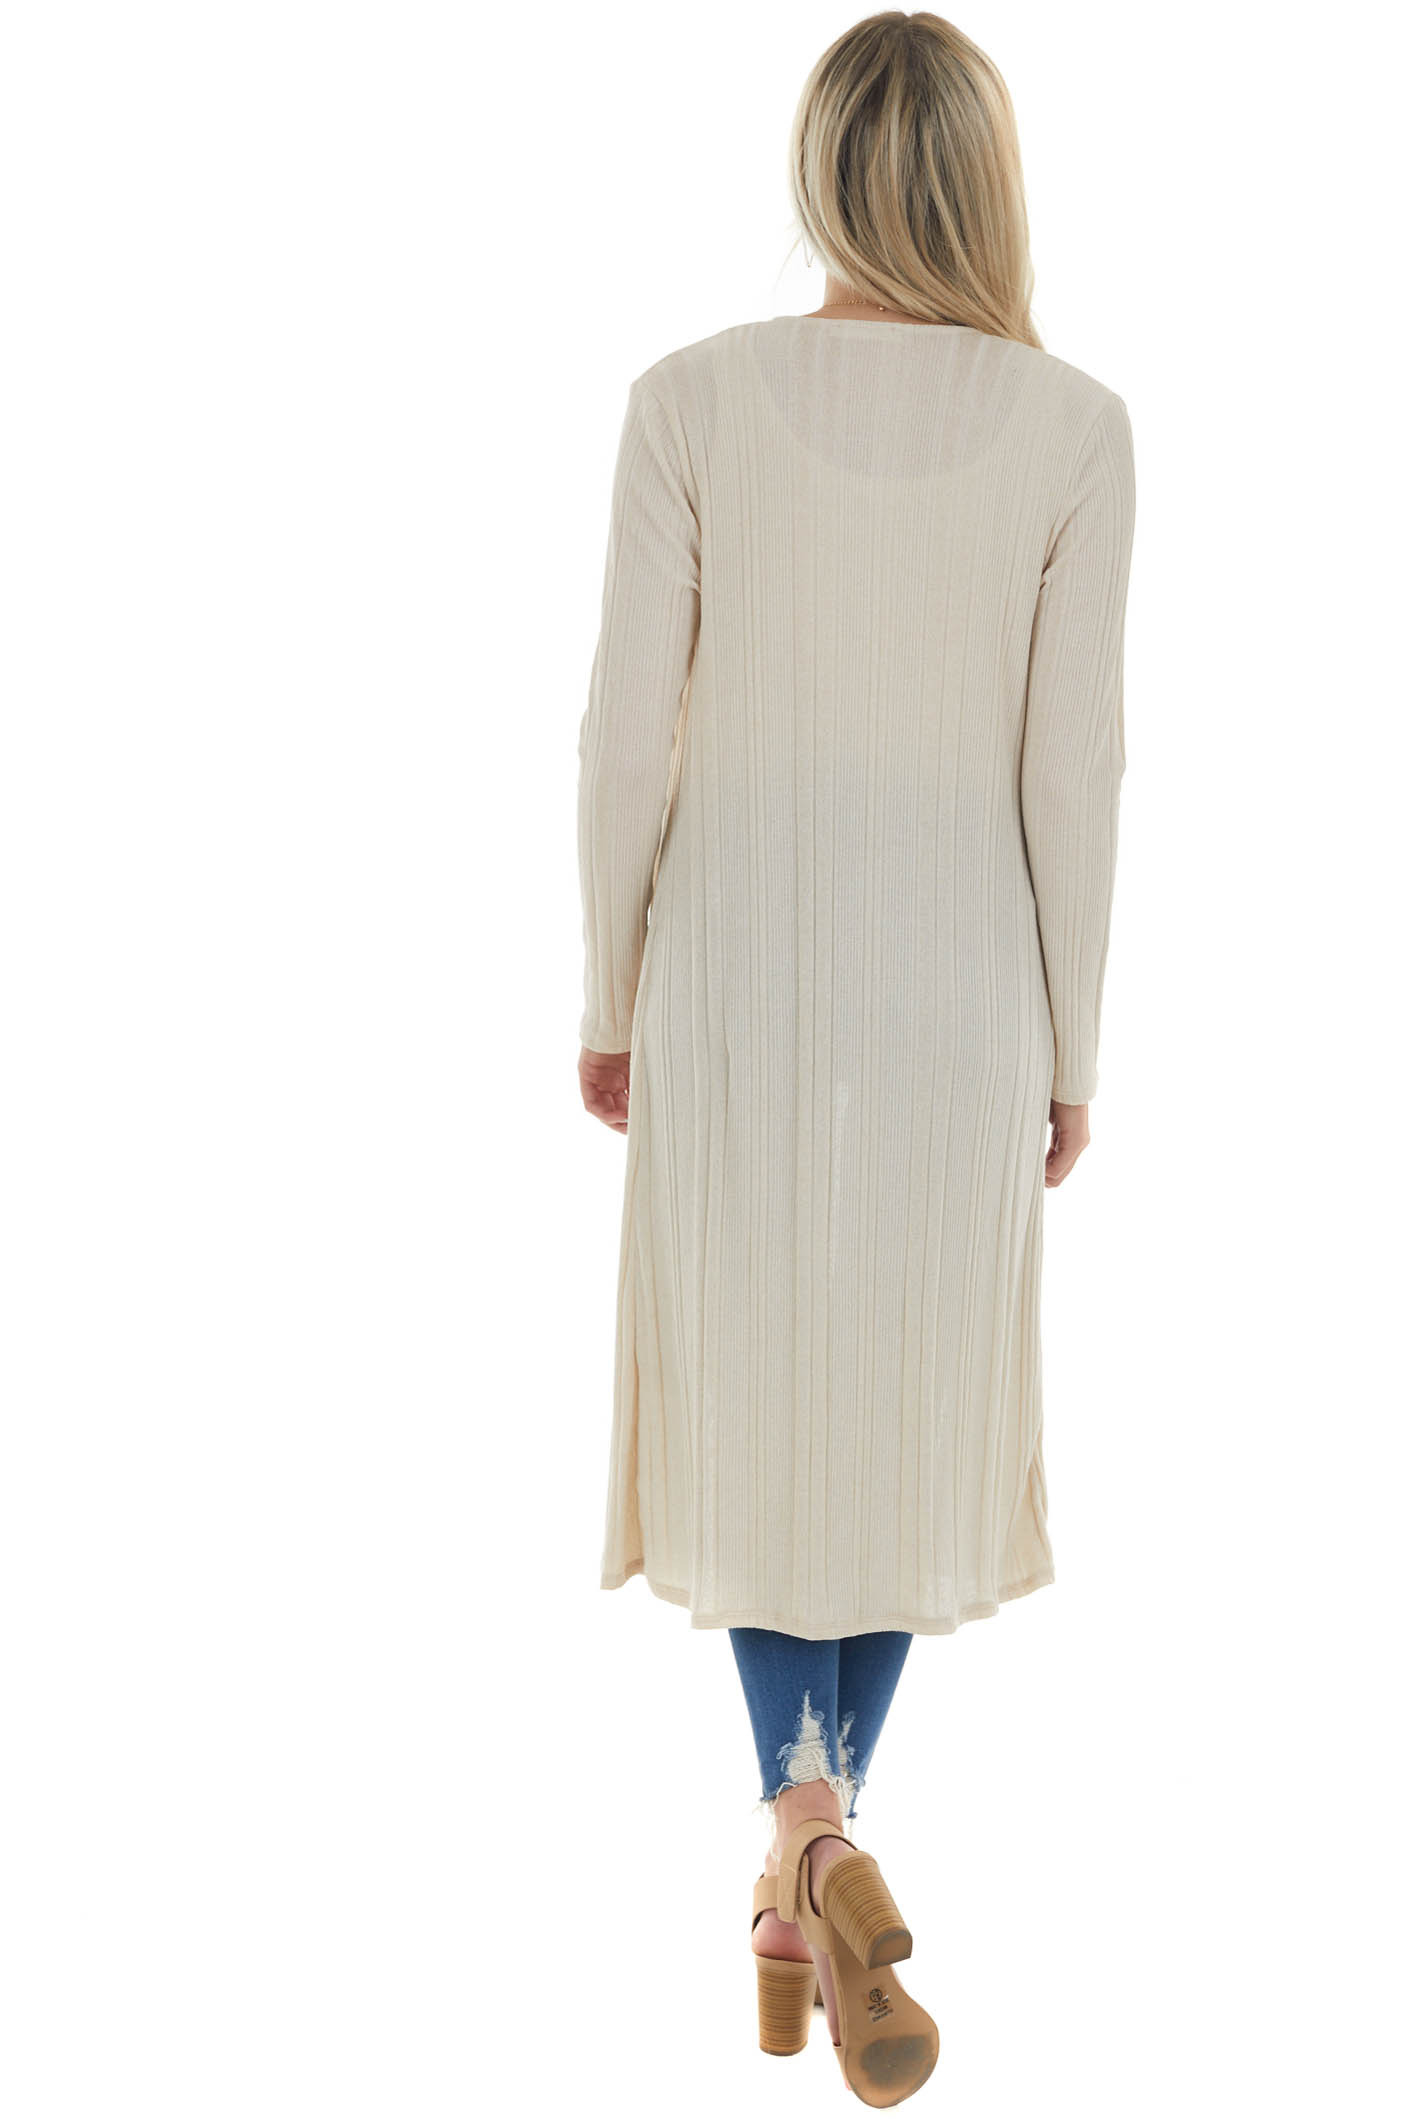 Cream Ribbed Tank Top and Duster Cardigan Set